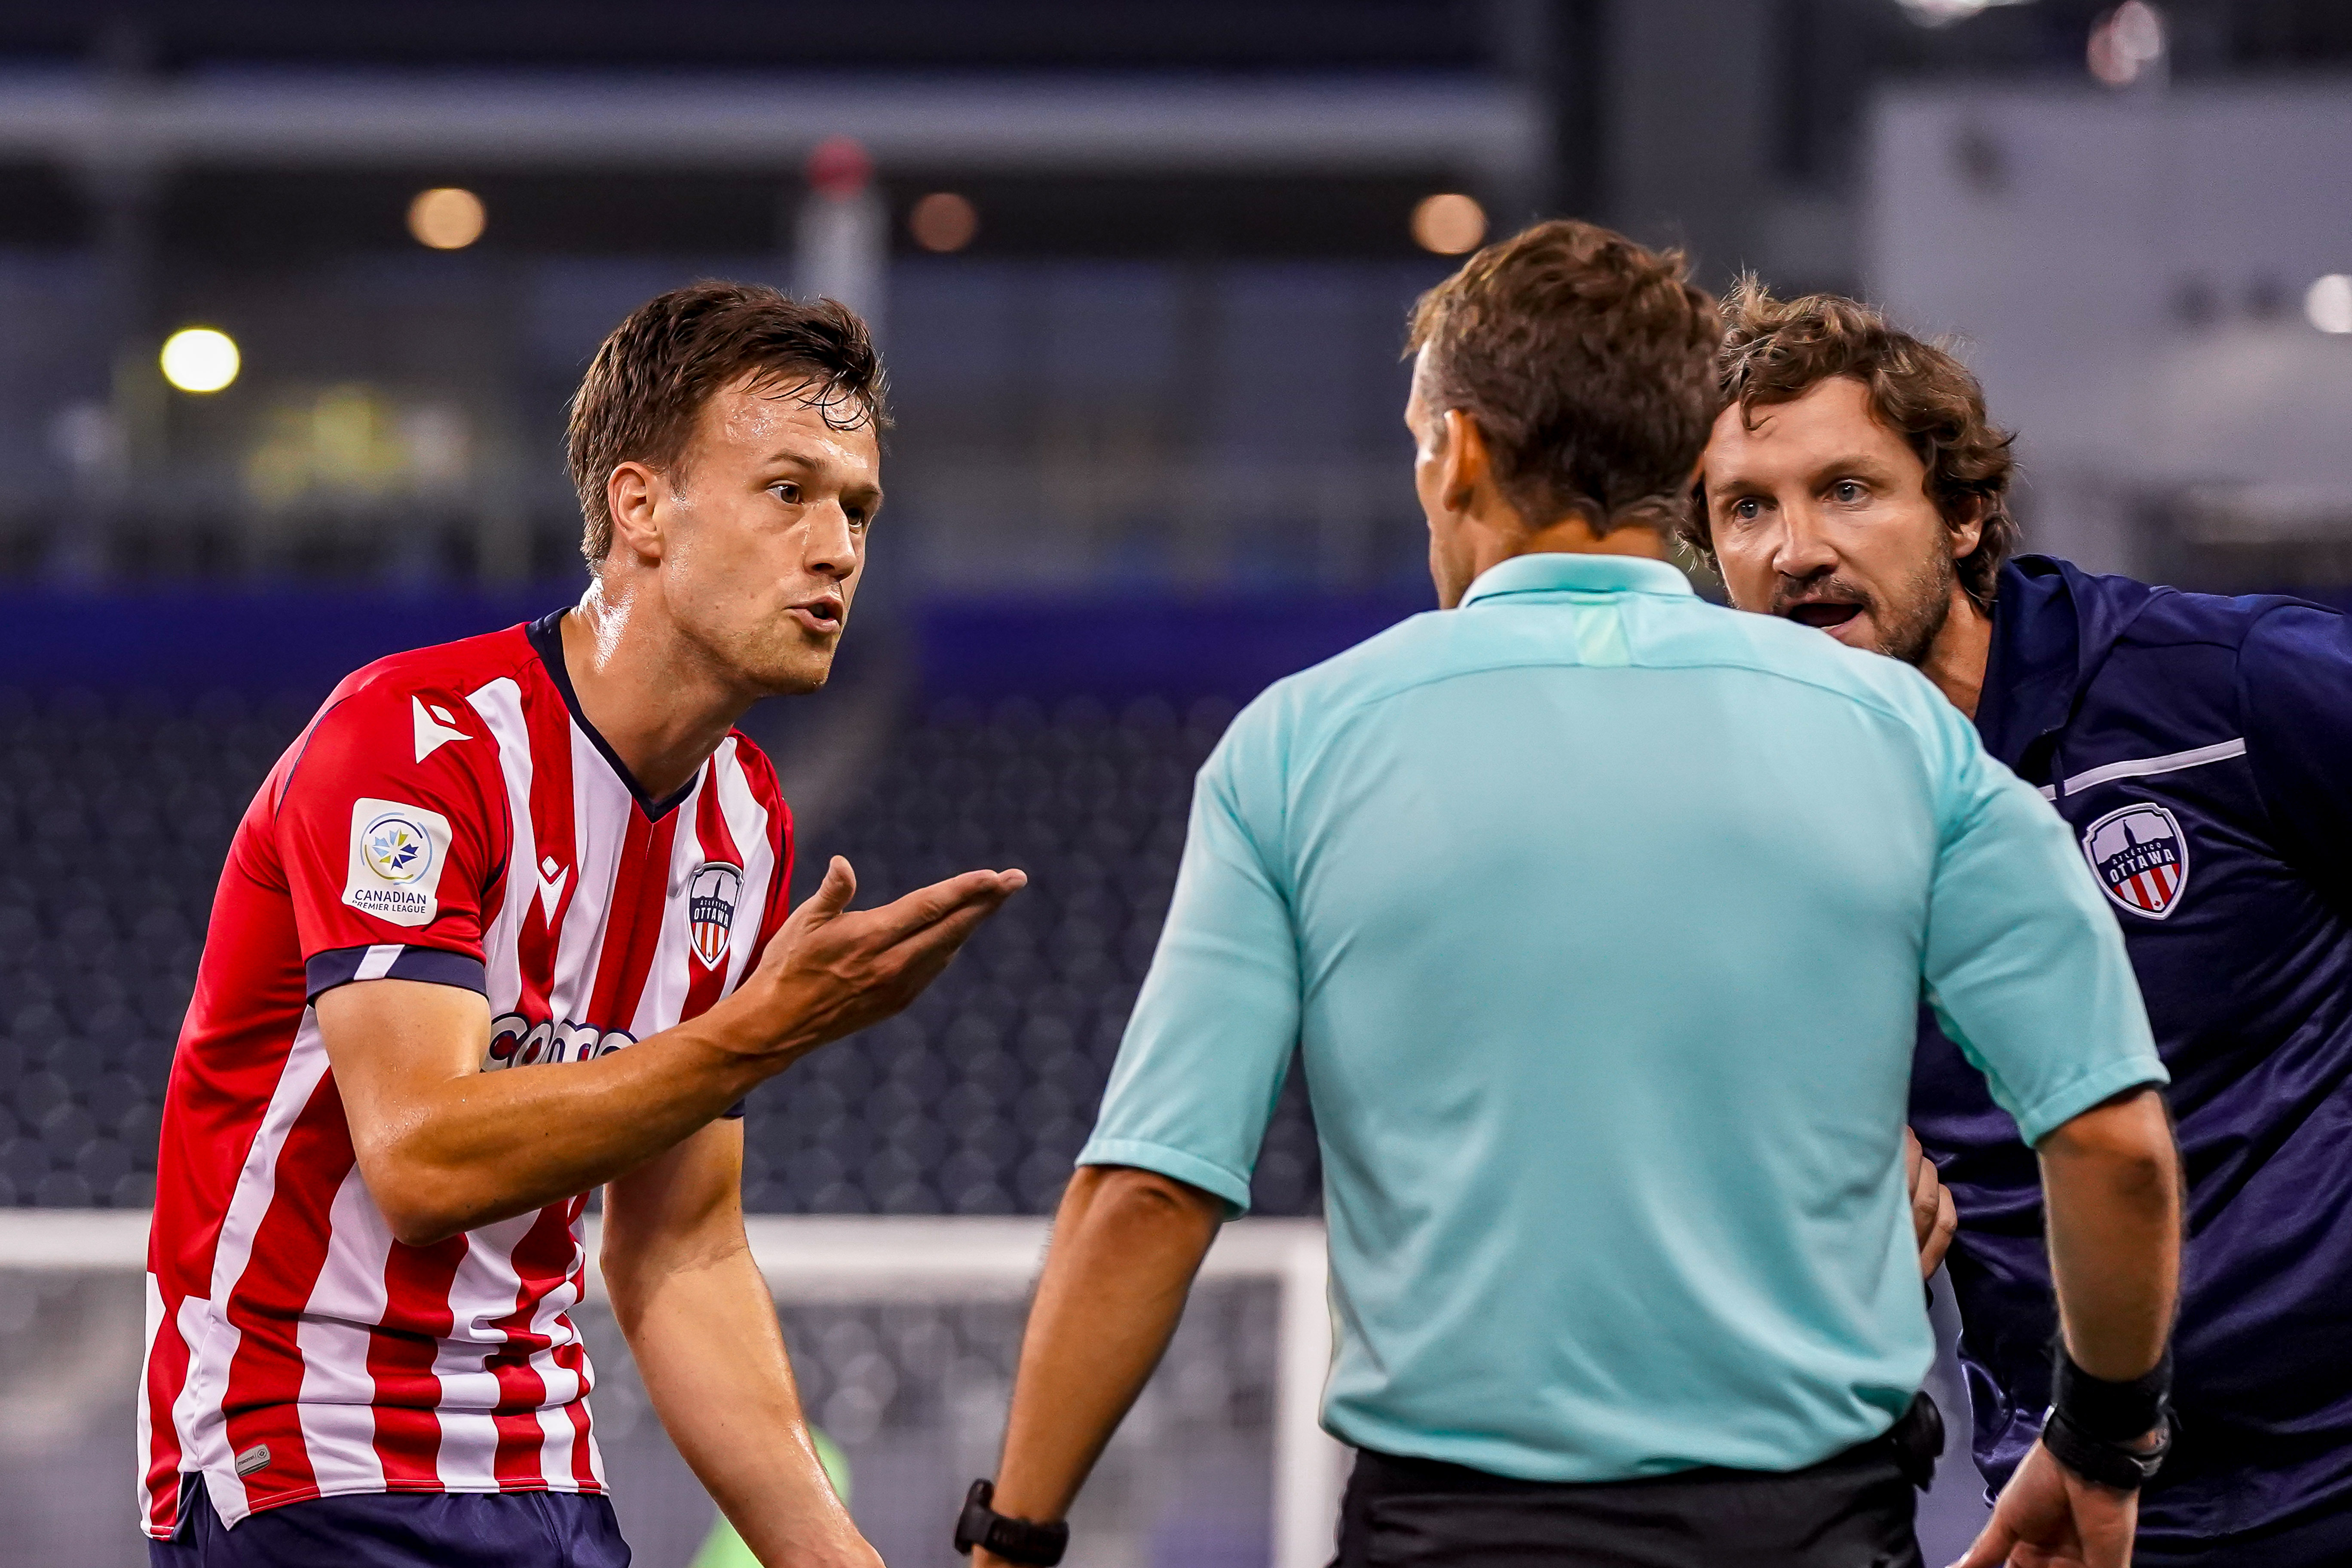 July 21, 2021. Pacific FC vs Atlético Ottawa. First-Half. Ben McKendry and Head Coach Mista of Atlético Ottawa argue a red card issued to McKendry in the first-half.